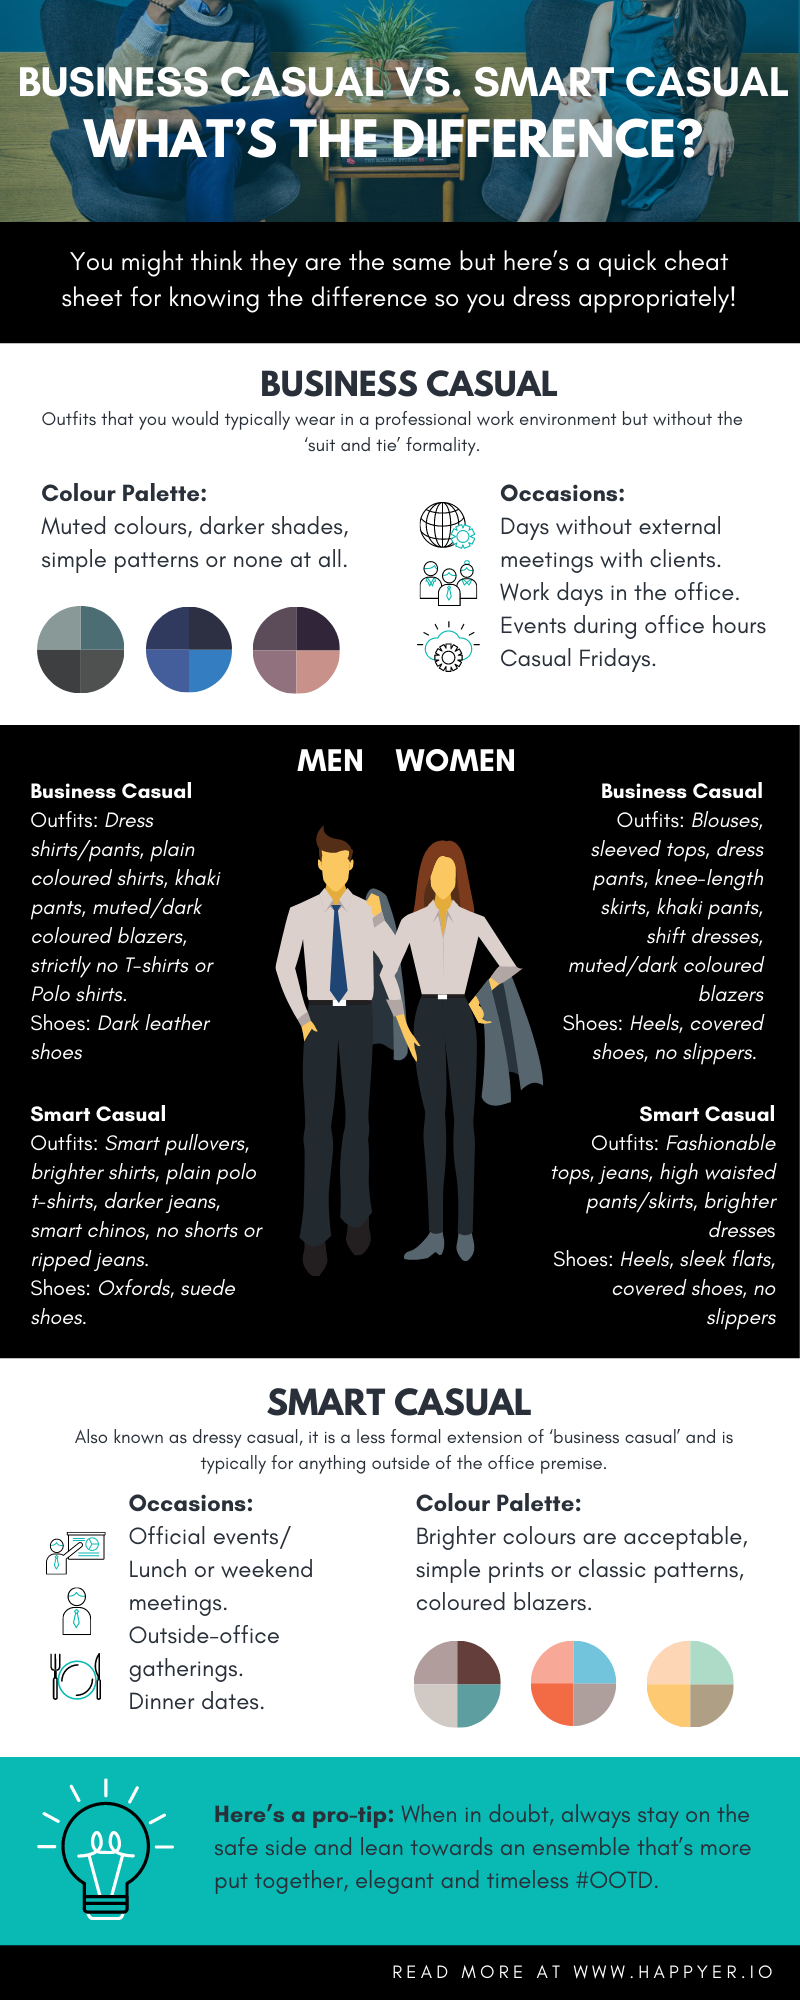 Business Casual vs Smart Casual Infographic